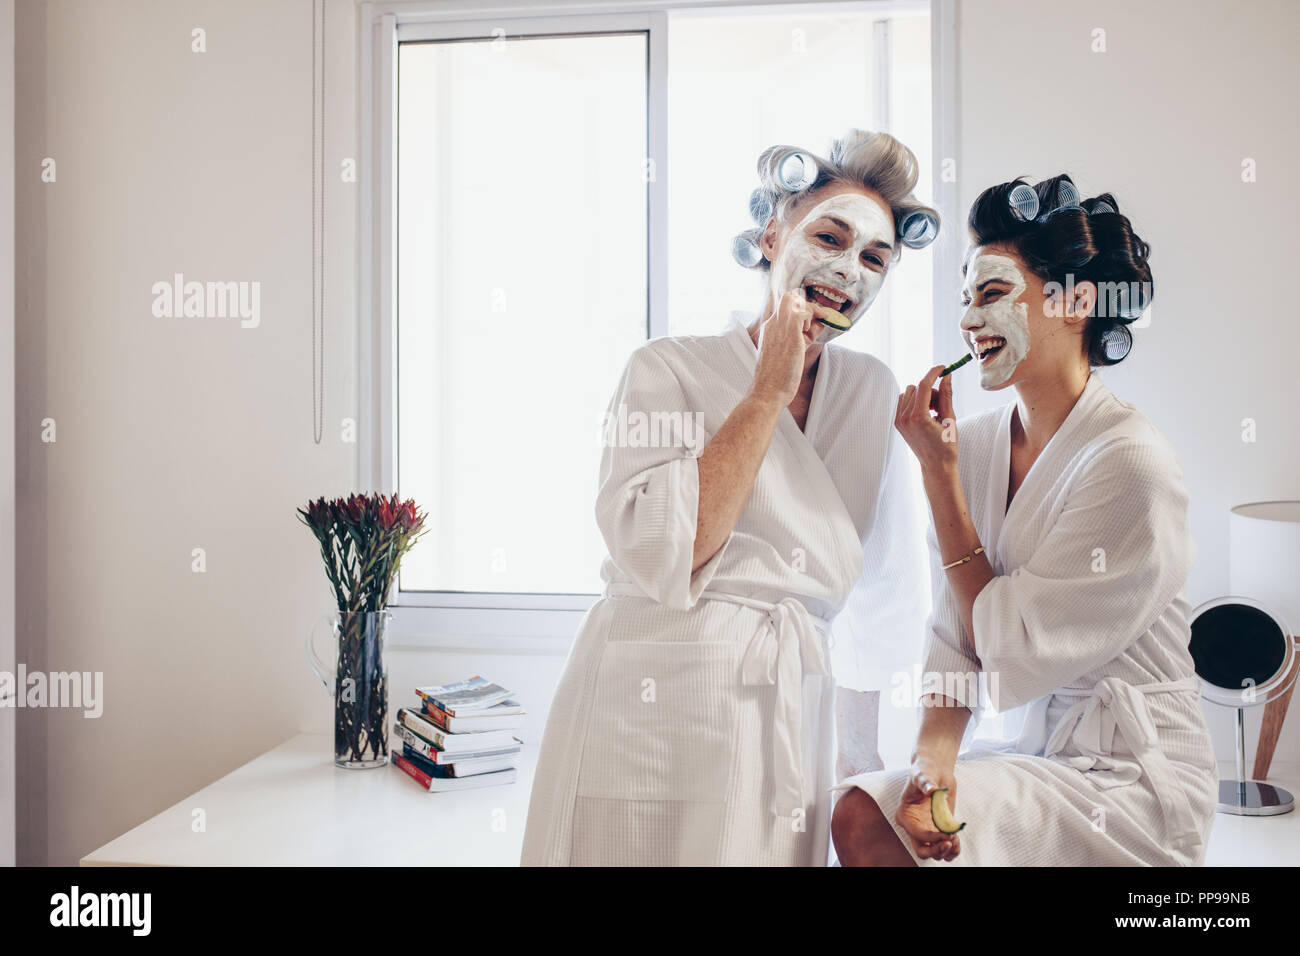 Happy Women In Bathrobes Standing At Home Eating Slices Of Cucumber Smiling Women Wearing Curling Rollers To Their Hair And Face Pack Having Fun At H Stock Photo Alamy